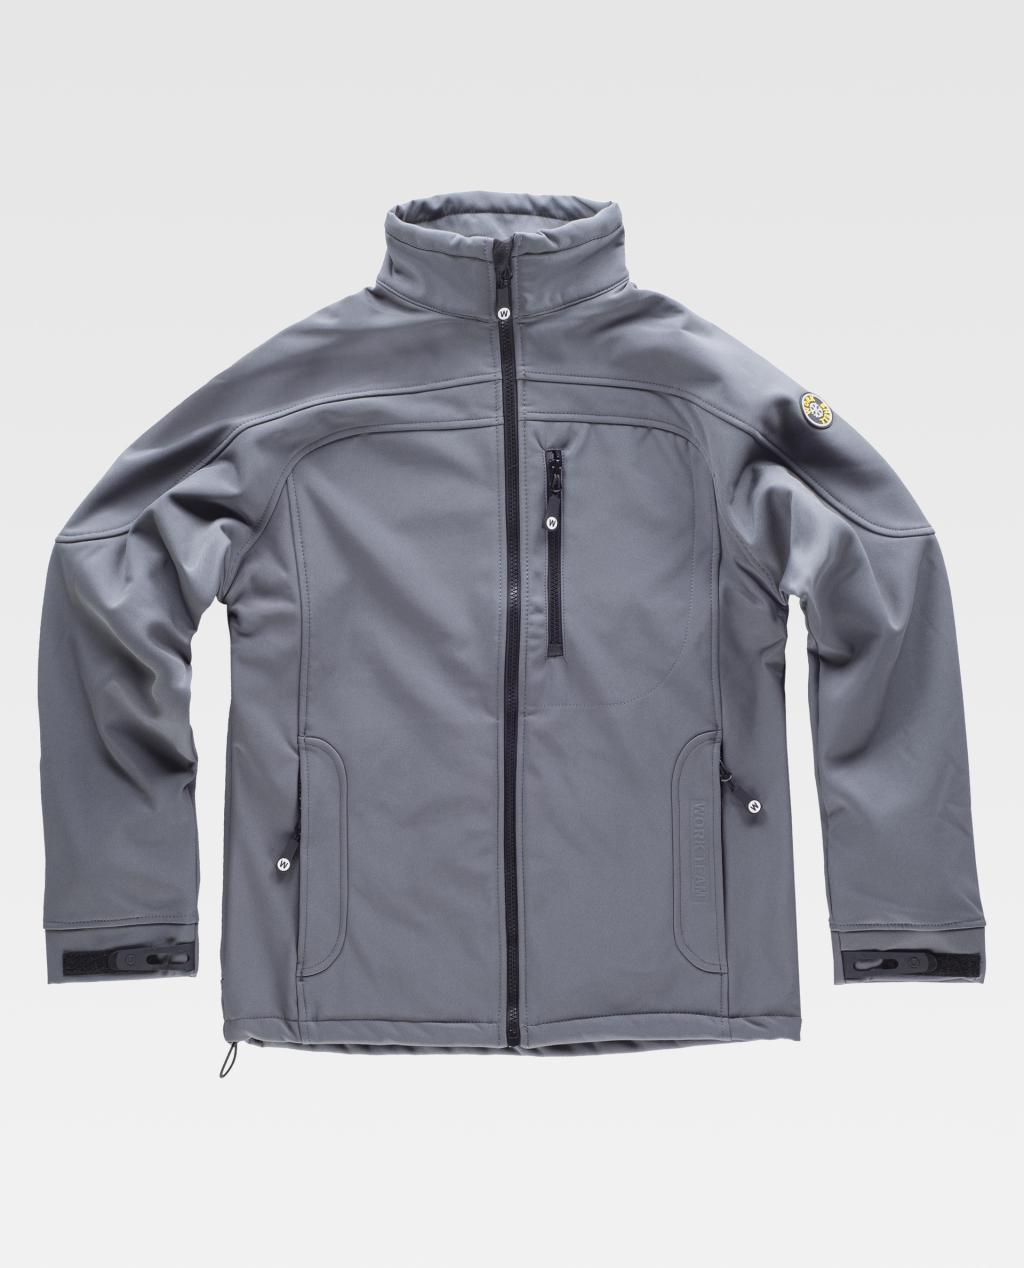 Soft-Shell W/T S9010